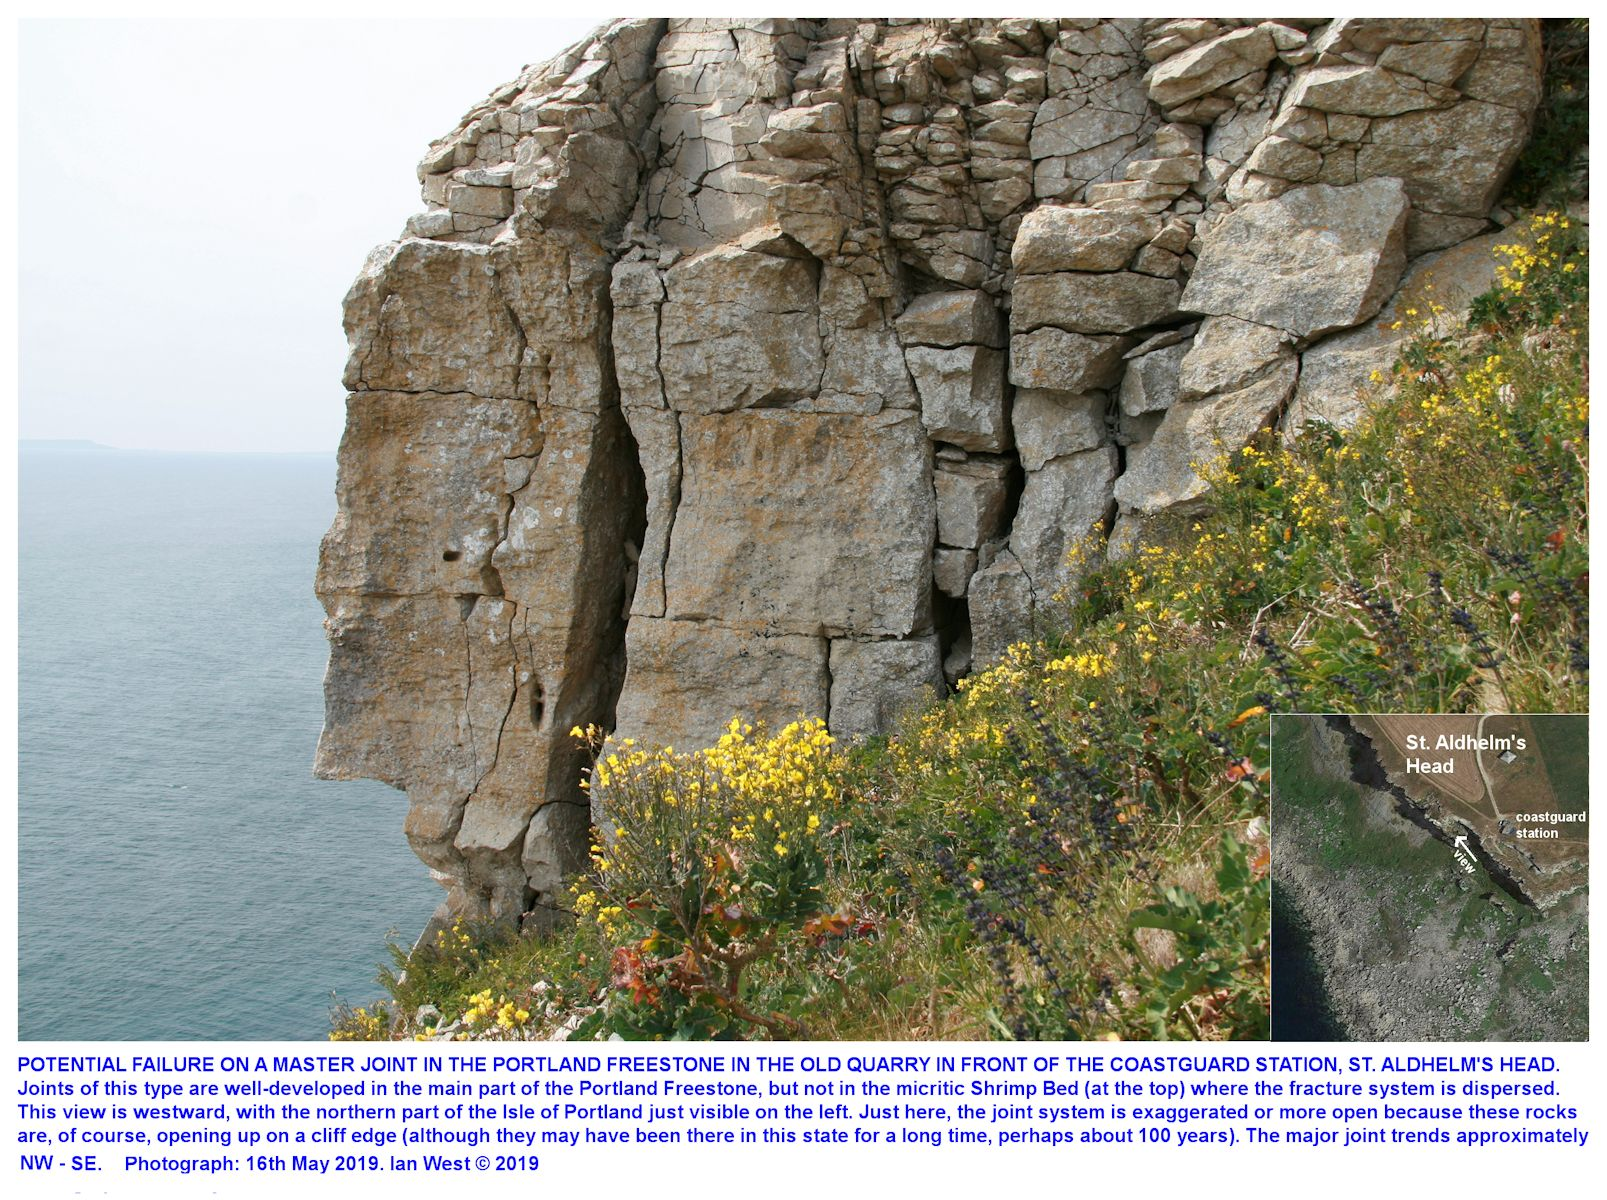 An unstable block of Portland Stone next to a major joint extending SE to NW, the general trend, near the Coastguard Station at the southern end of St. Aldhelm's Head, Dorset, 16th May 2019